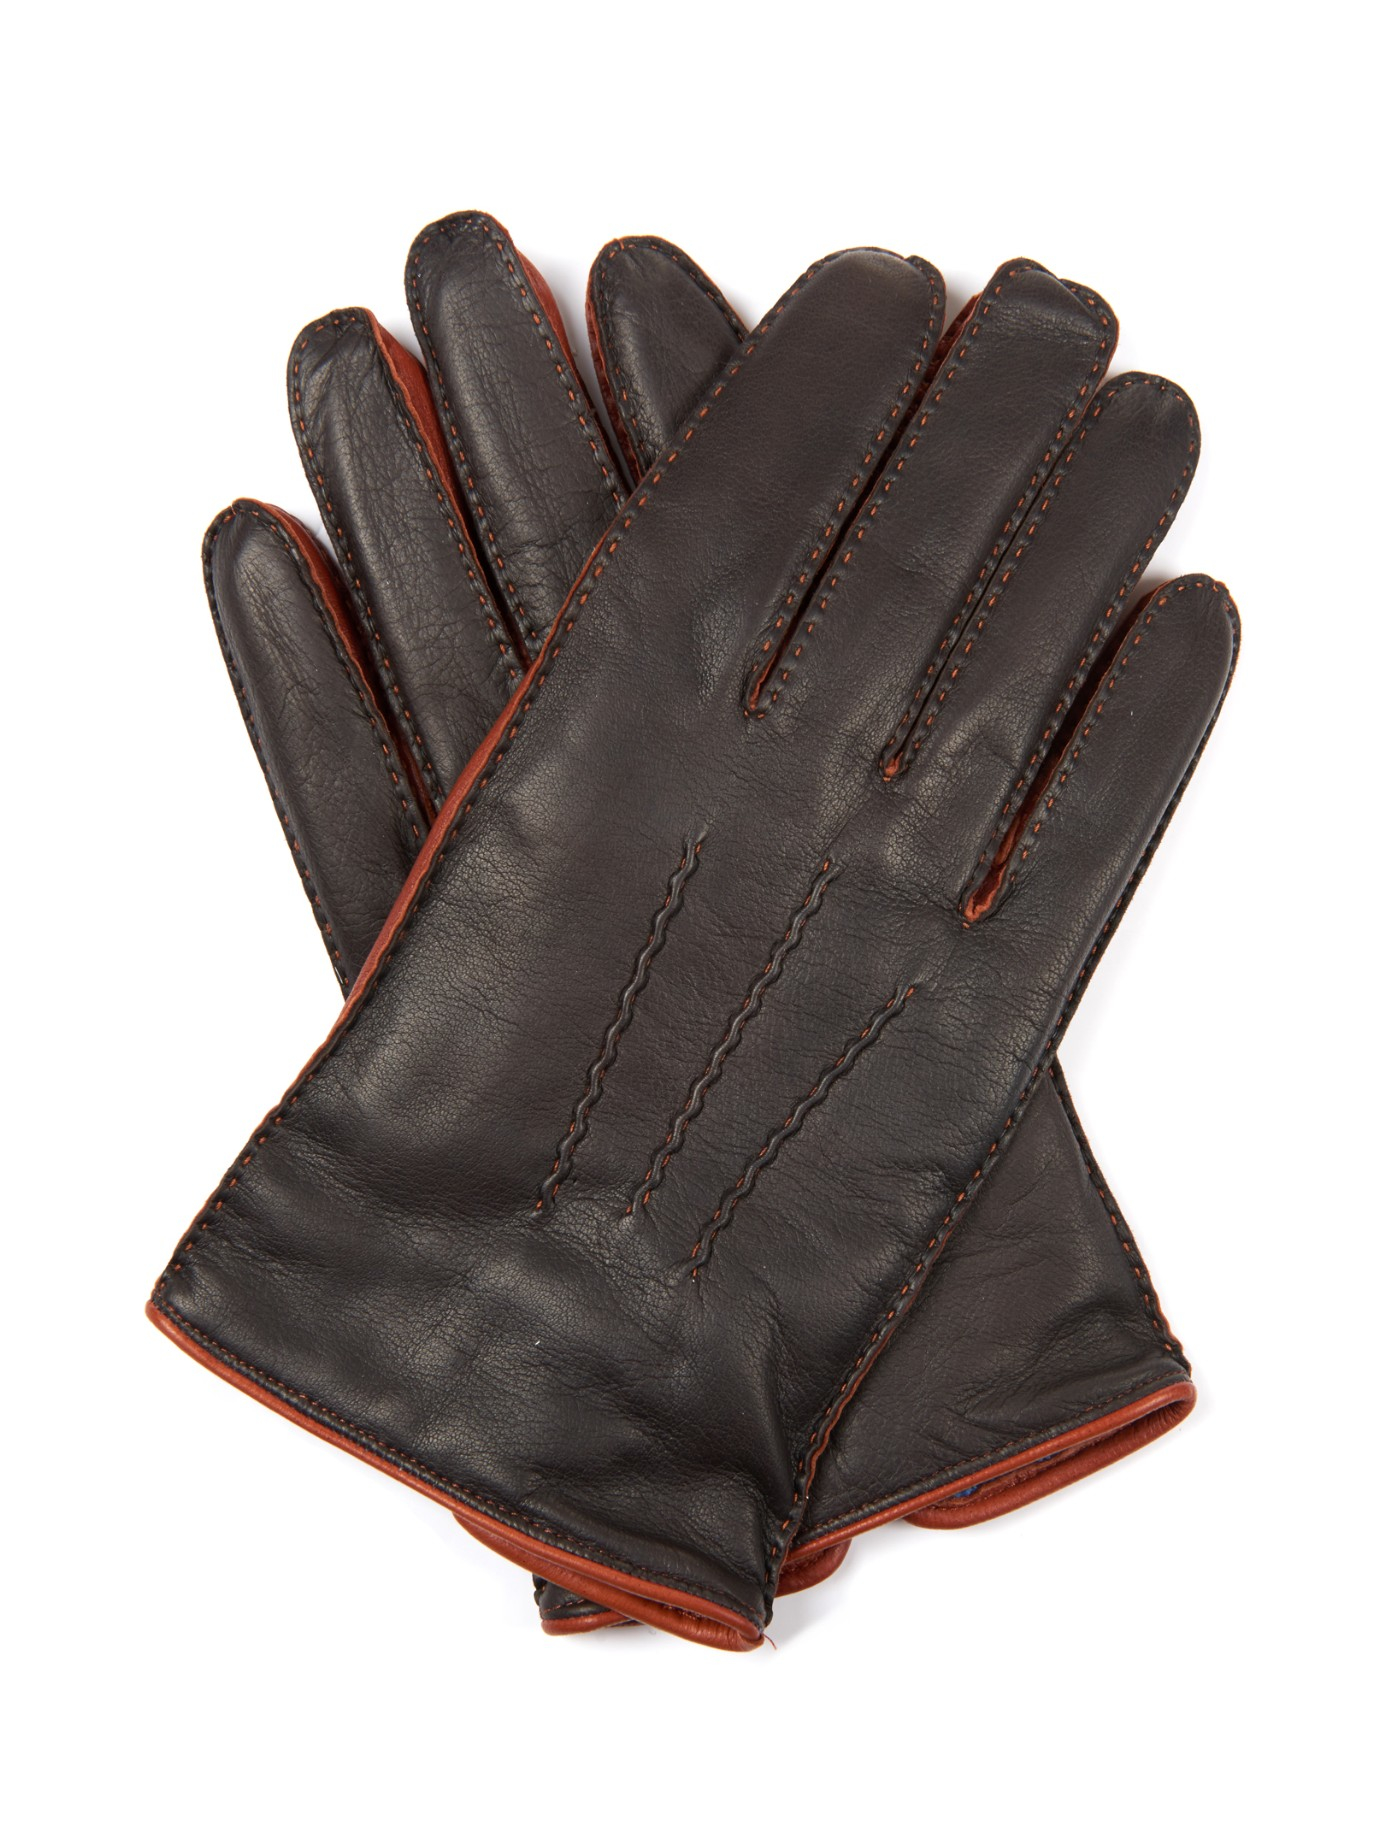 Best mens leather gloves uk - Dents Leather Gloves The Best Of 2017